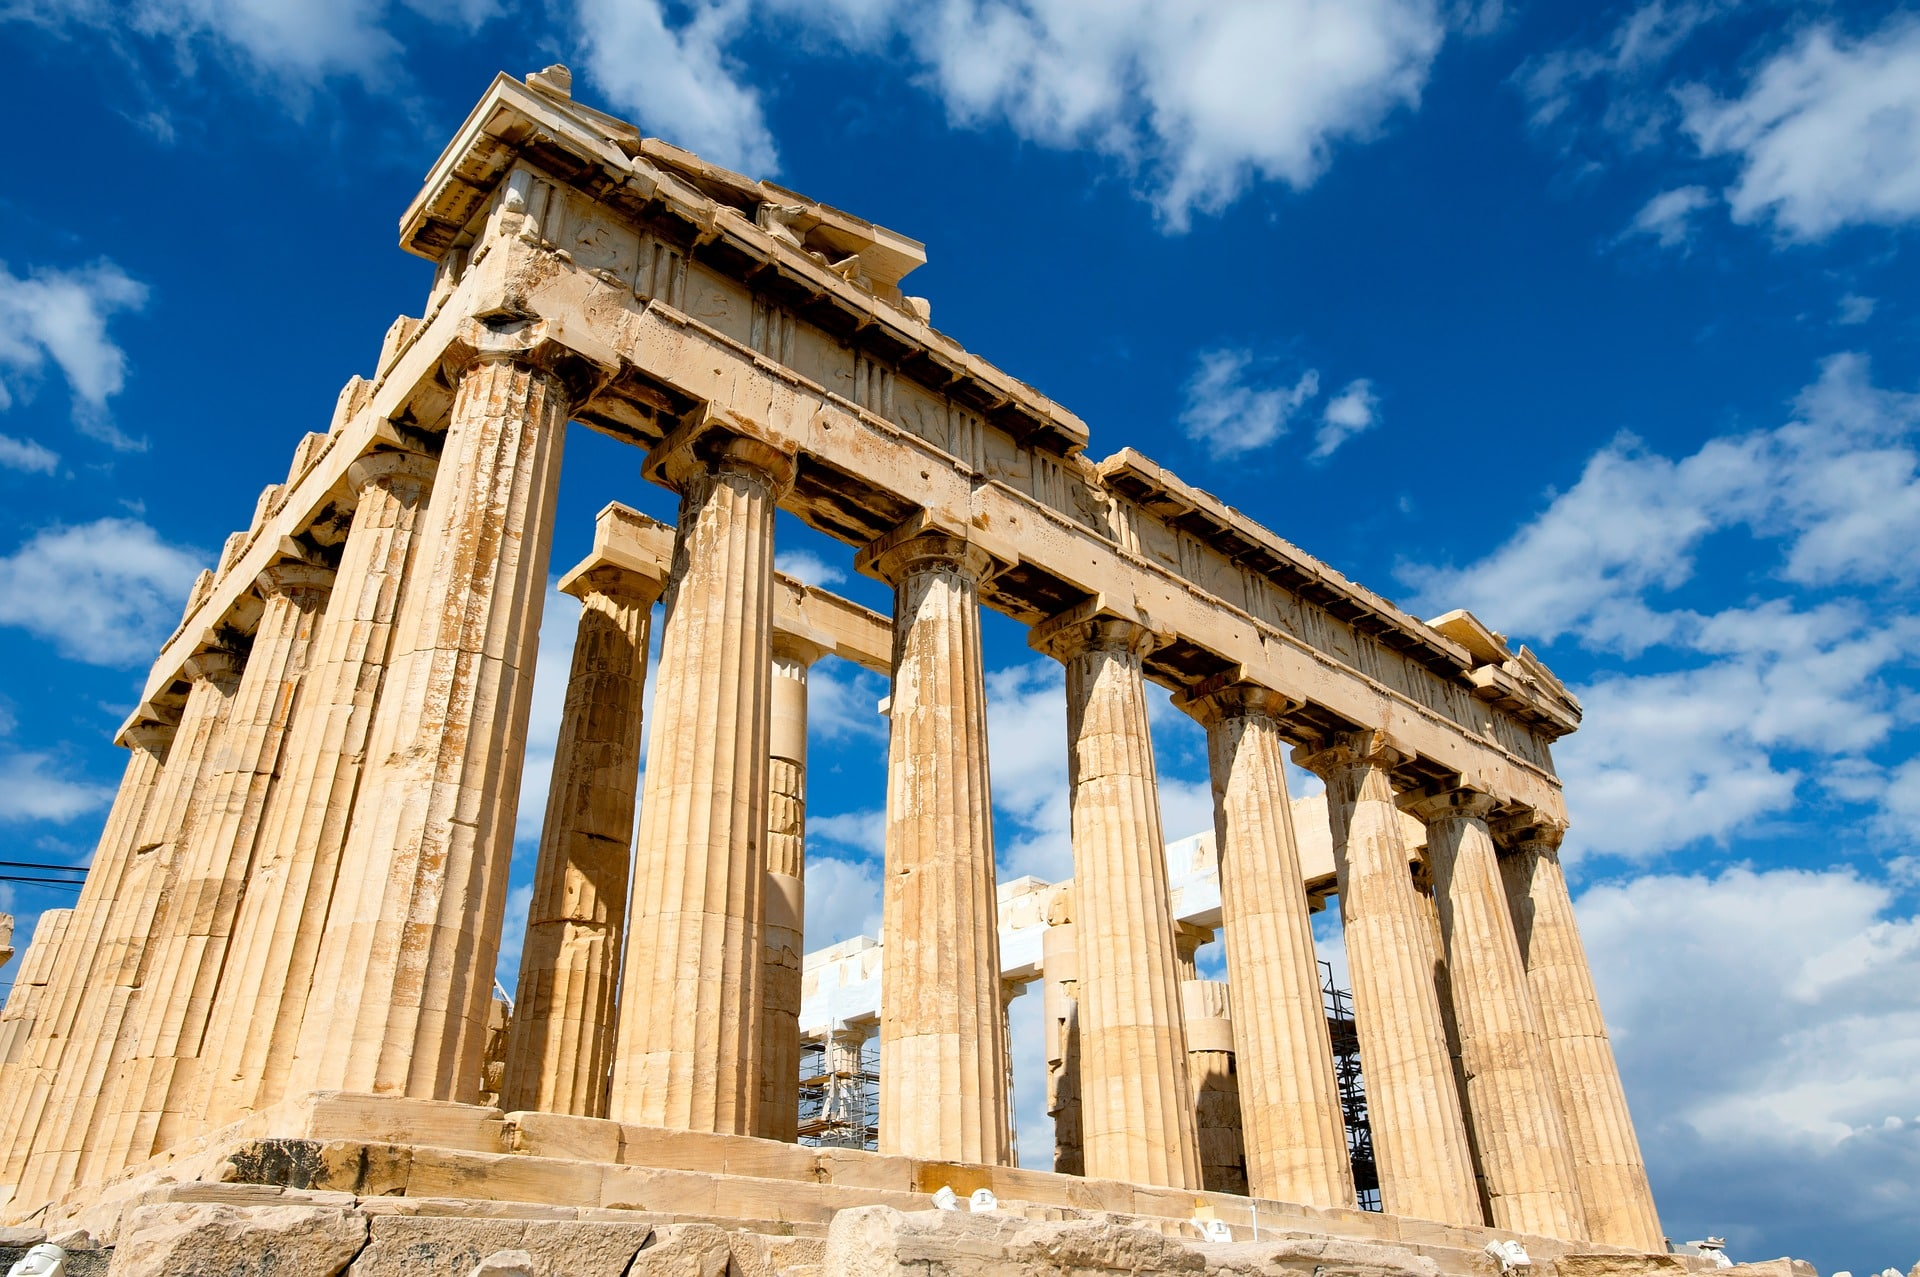 greece and the islands in the footsteps of st paul paulist fathers